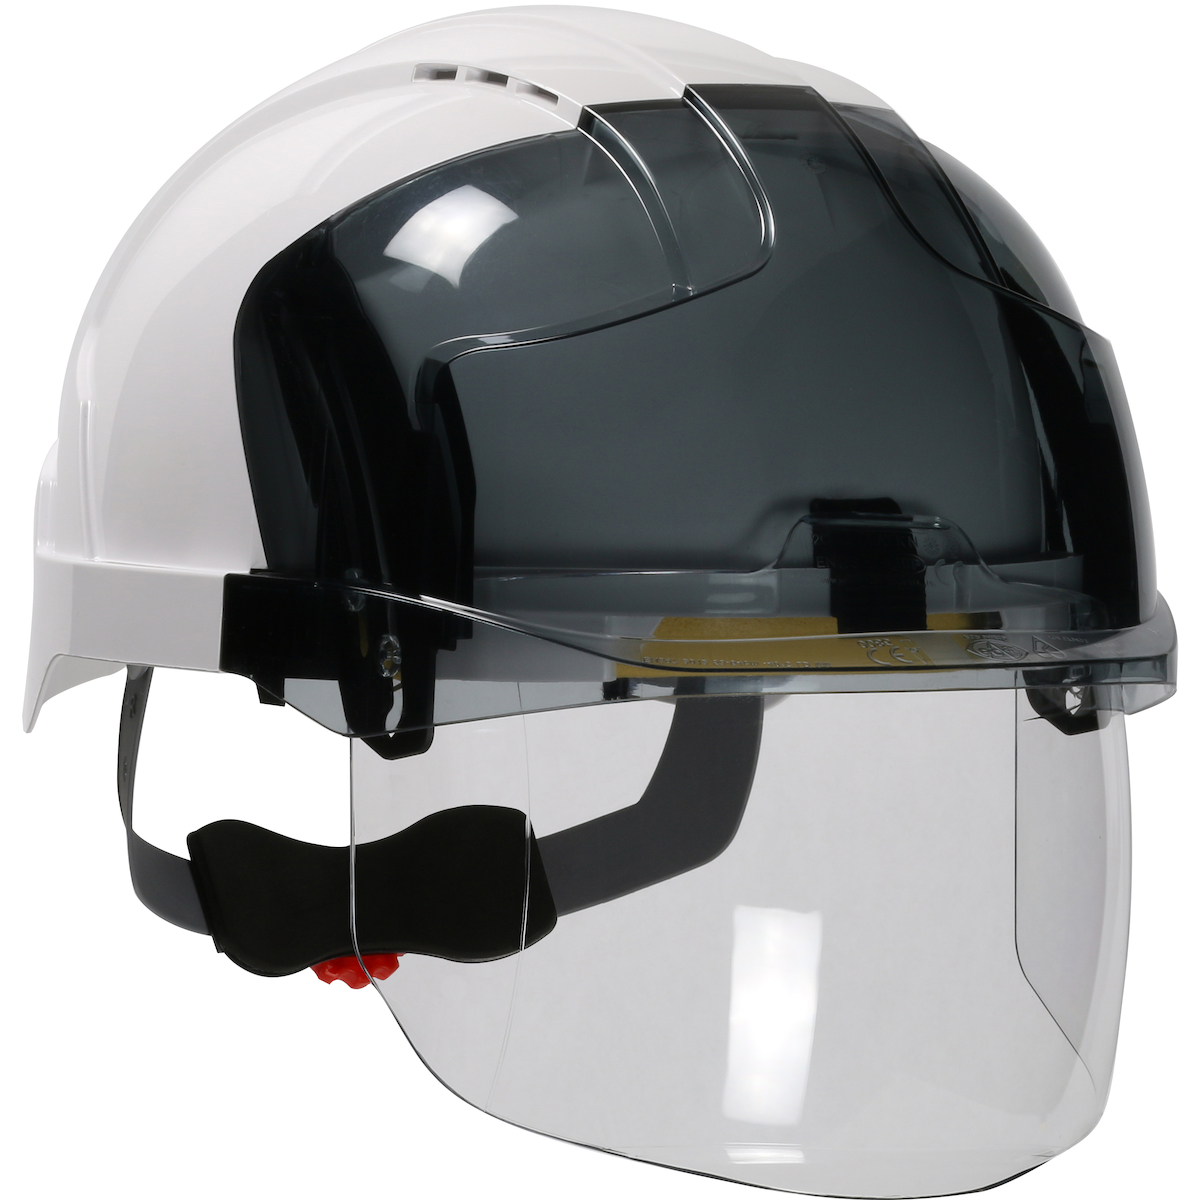 Type I, Vented Industrial Safety Helmet with Lightweight ABS Shell, Integrated ANSI Z87.1 Faceshield, 6-Point Polyester Suspension and Wheel Ratchet Adjustment, White, OS